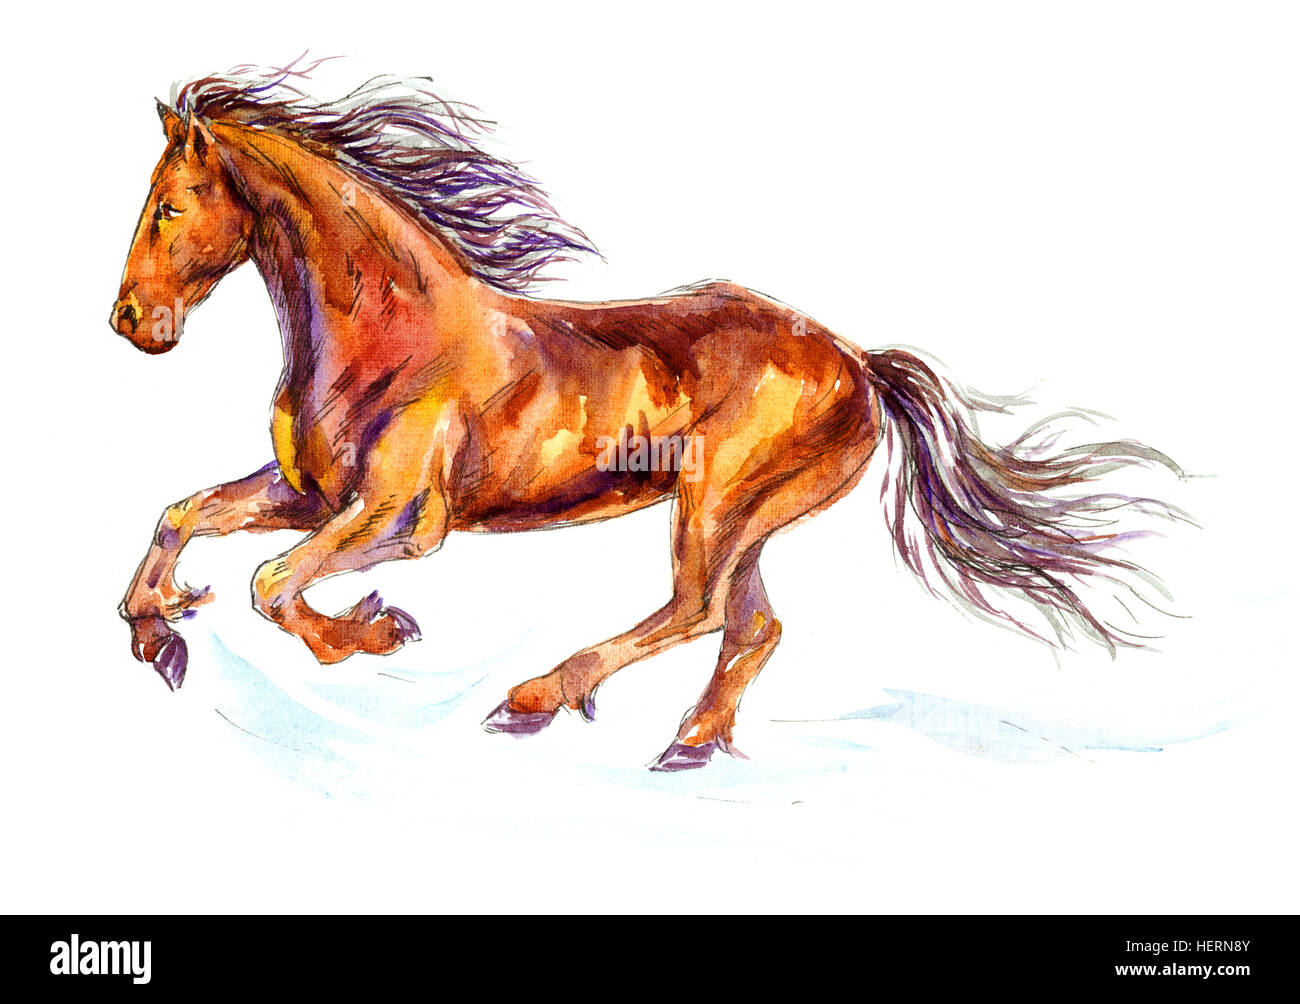 Fast Galloping Horse - Stock Image